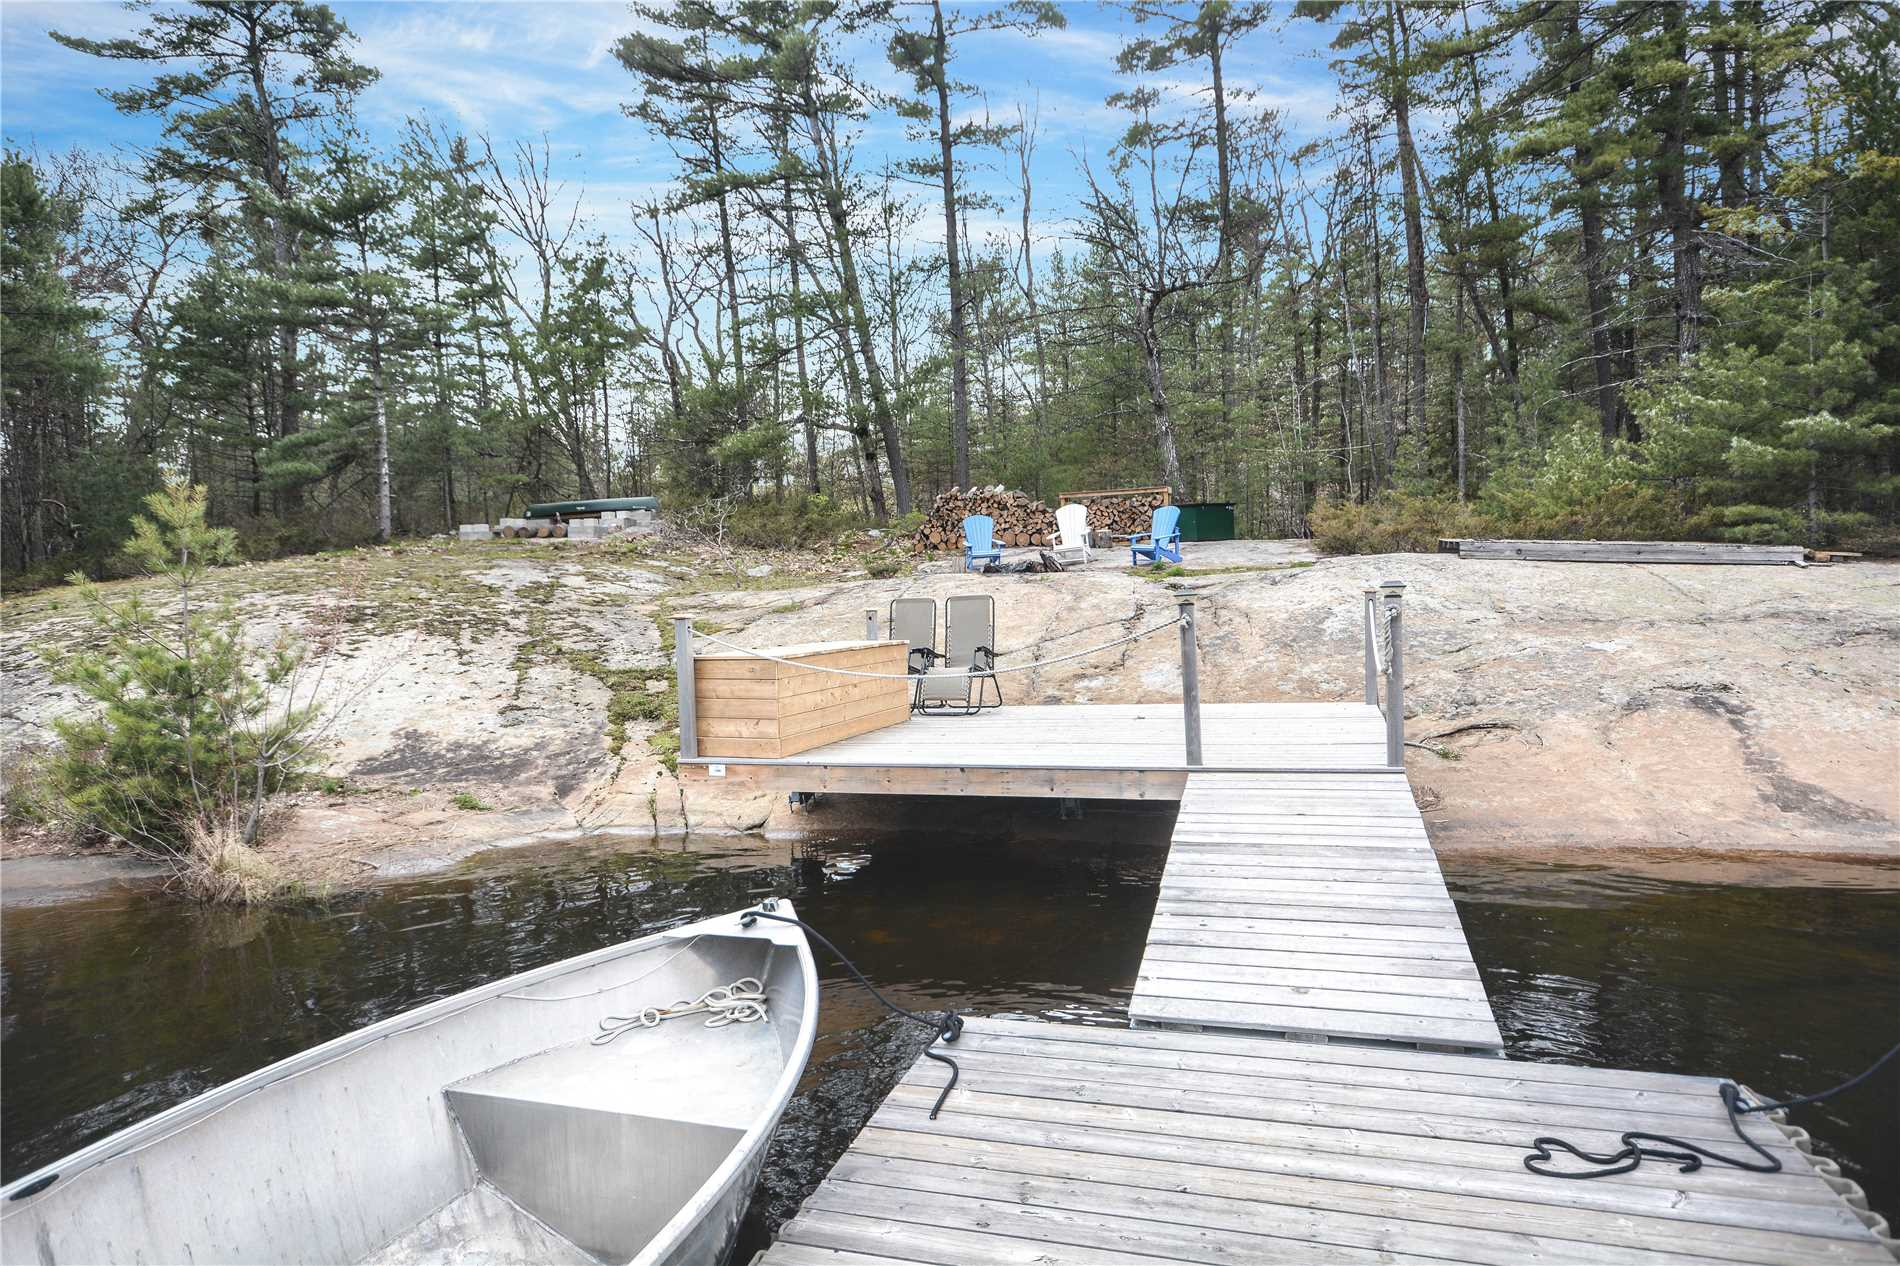 pictures of house for sale MLS: X4519502 located at 2764 Island 2060/Big Ship, Georgian Bay P0E1E0